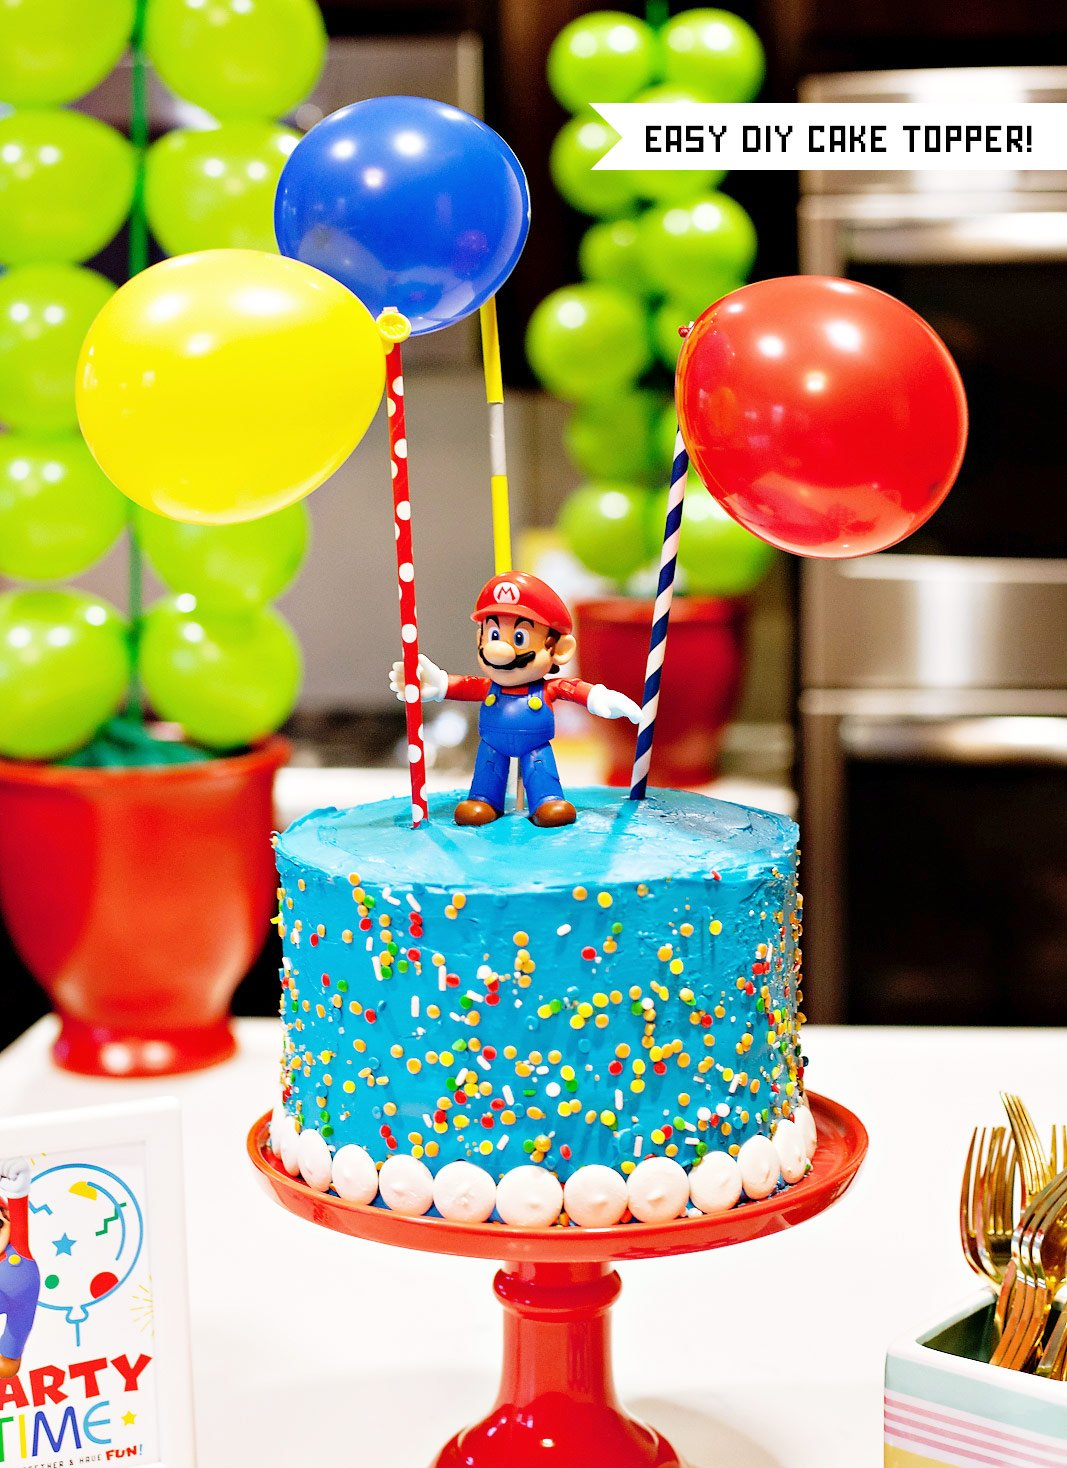 Super Mario Party Cake Homemade